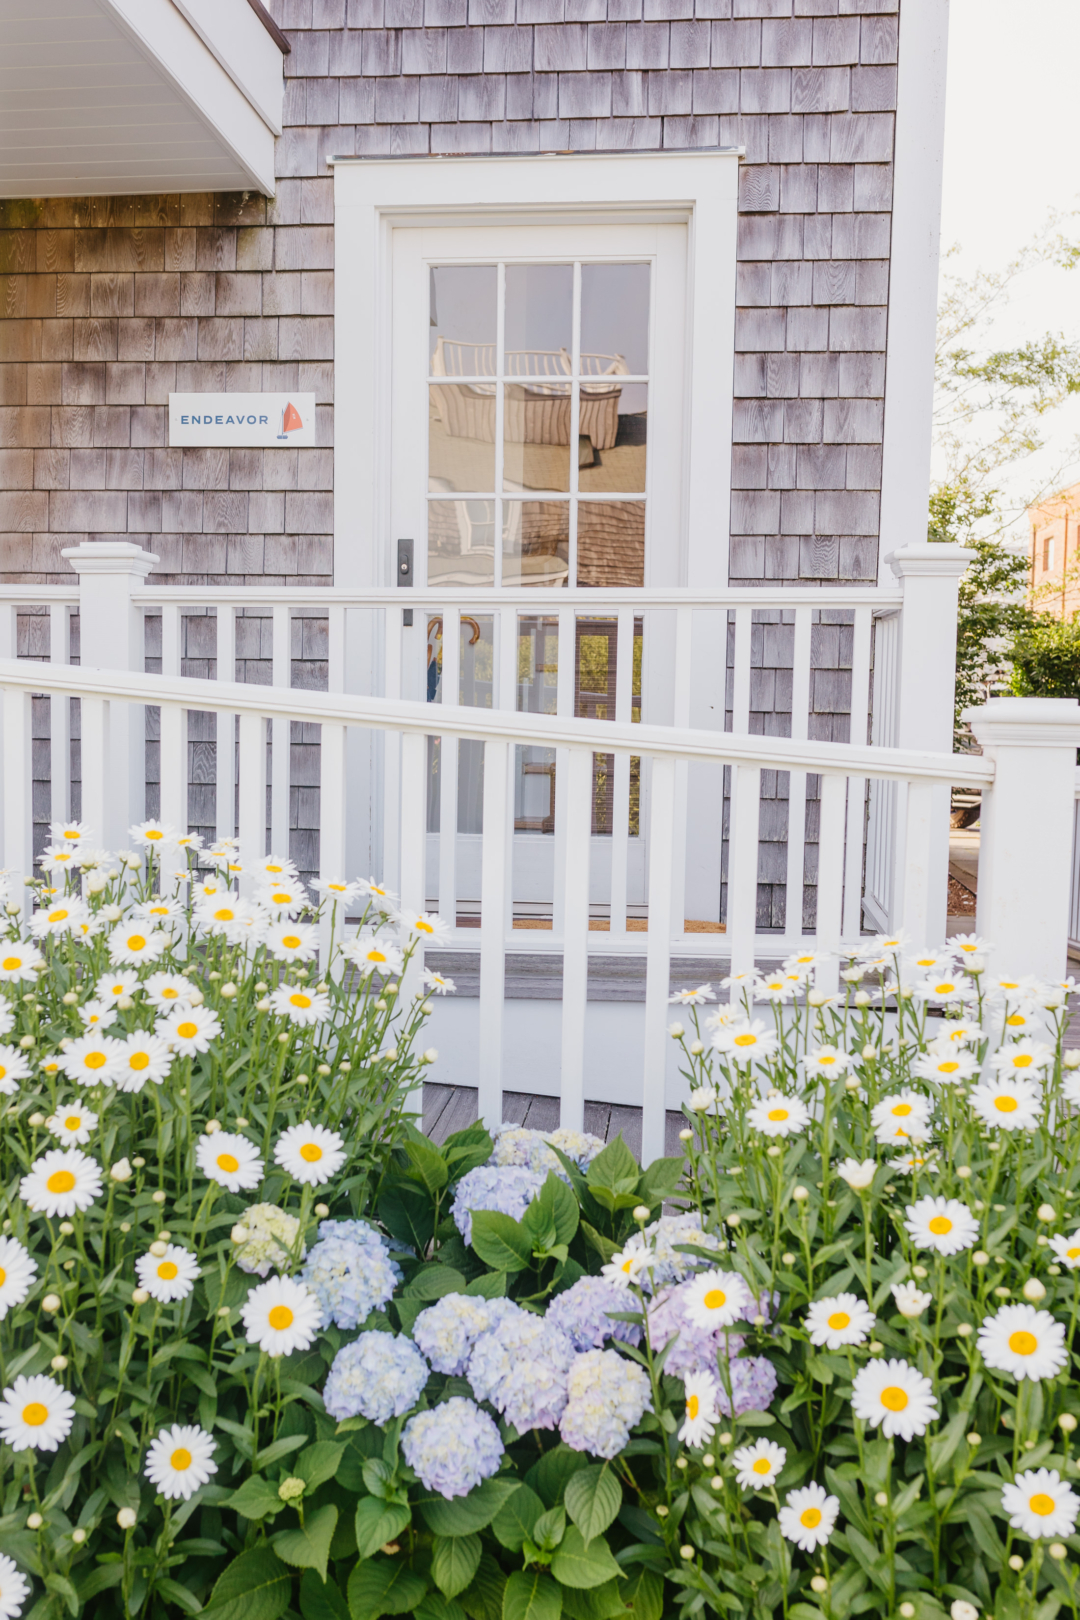 Travel: Designing the Endeavor Cottage with Serena & Lily at Inspirato Harborview Nantucket